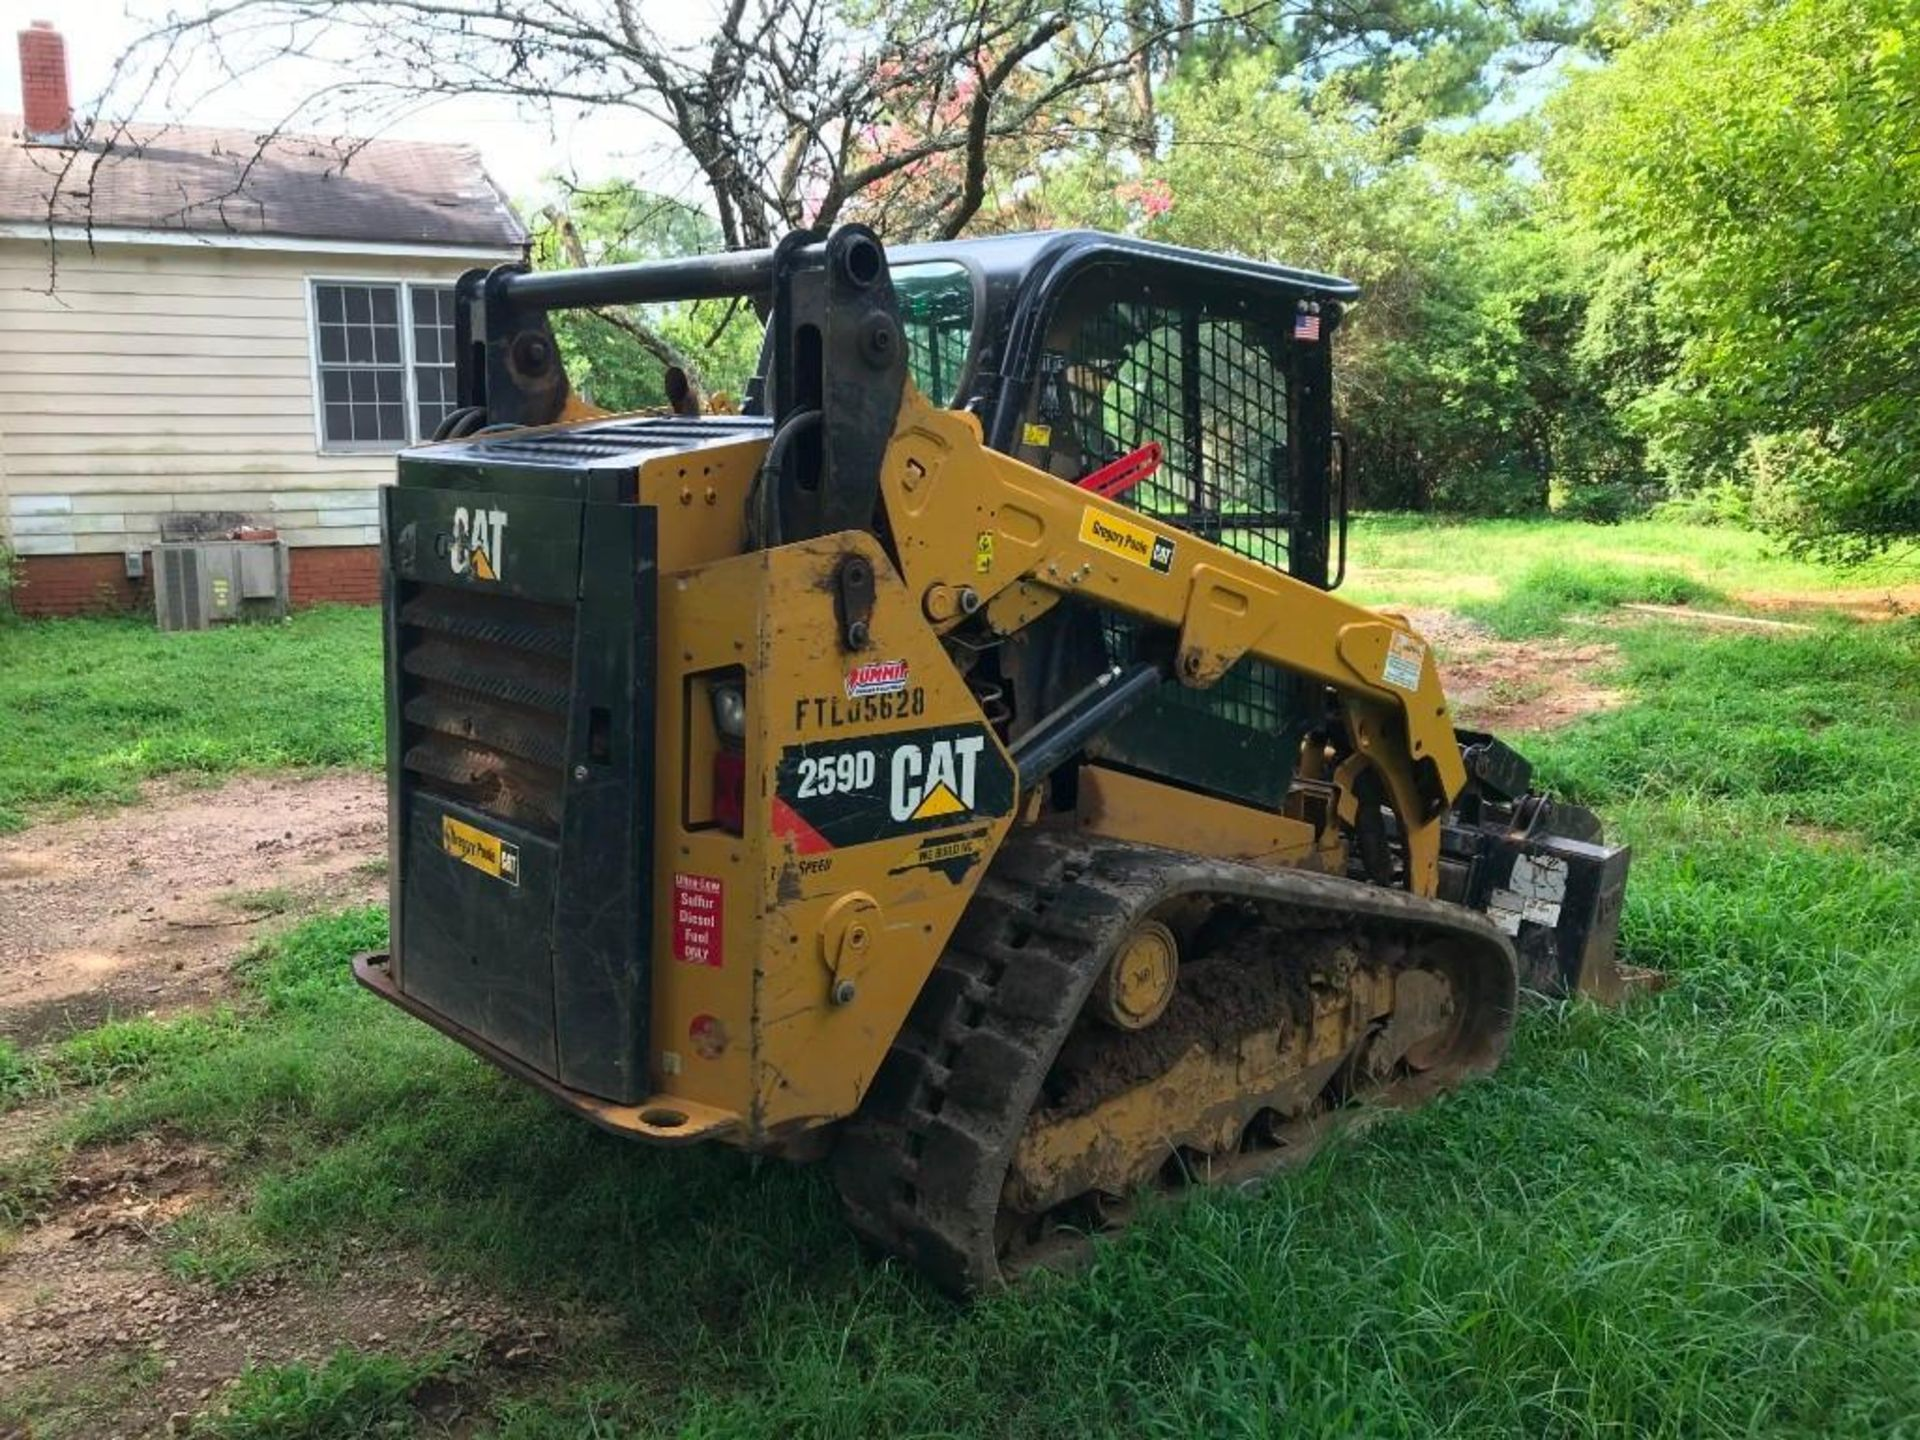 2016 CATERPILLAR 259D TWO SPEED TRACKED SKID STEER LOADER - Image 3 of 4